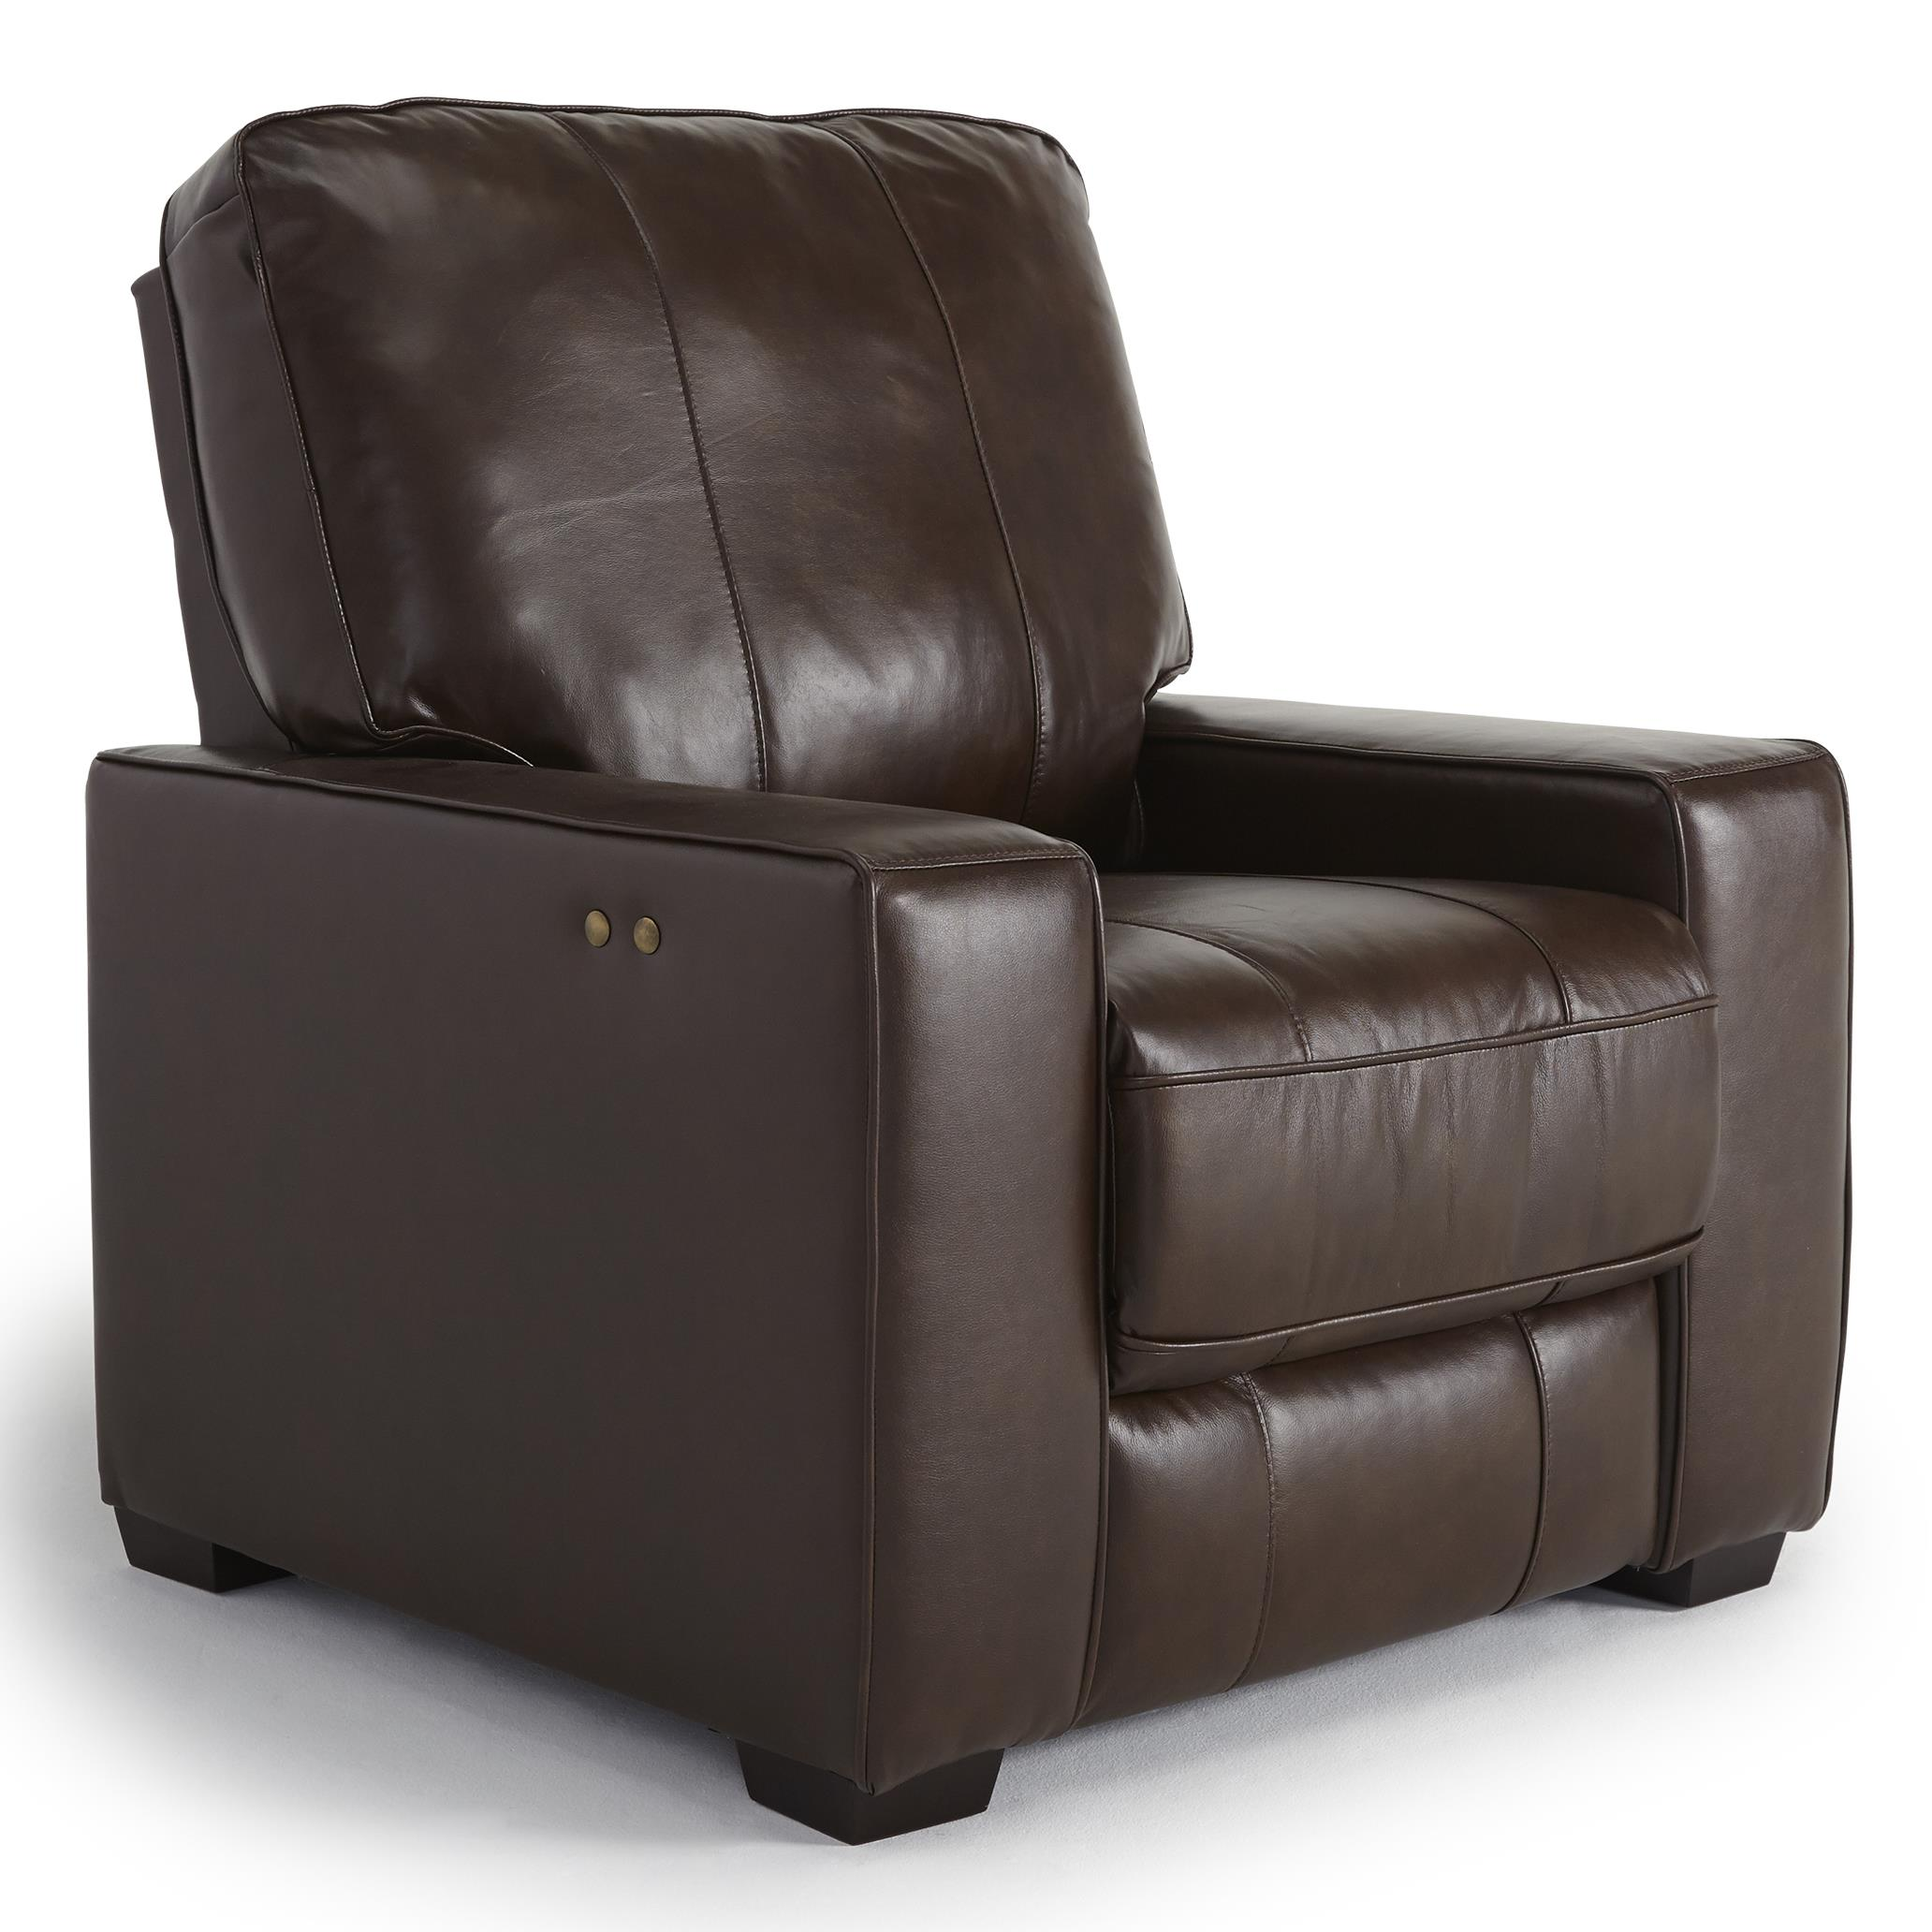 Best Home Furnishings Celena Power Reclining Space Saver Chair - Item Number: R906CP2-73216ALV